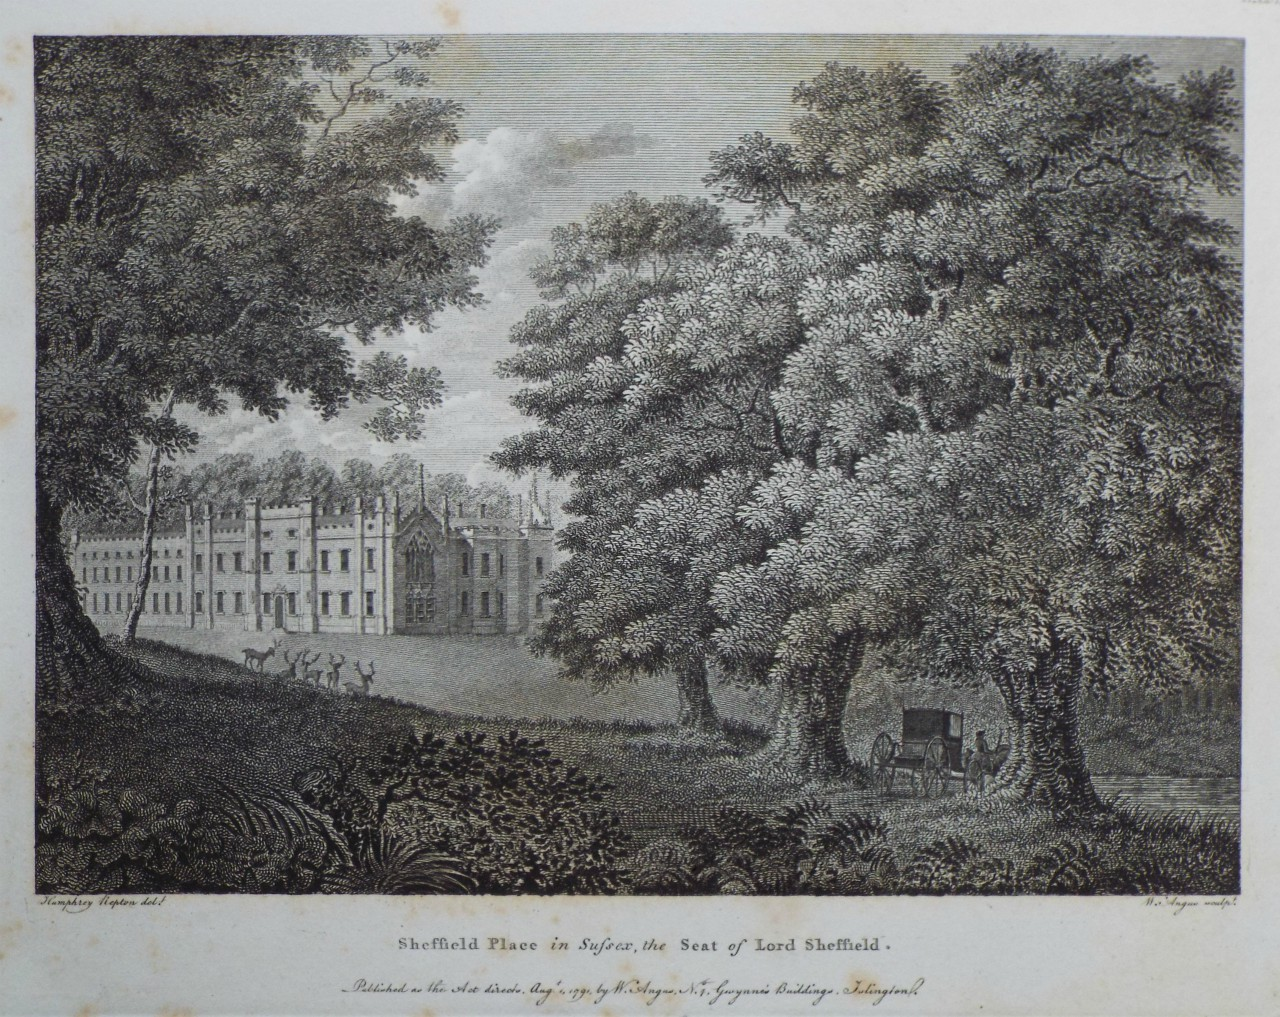 Print - Sheffield Place in Sussex, the Seat of Lord Sheffield. - Angus